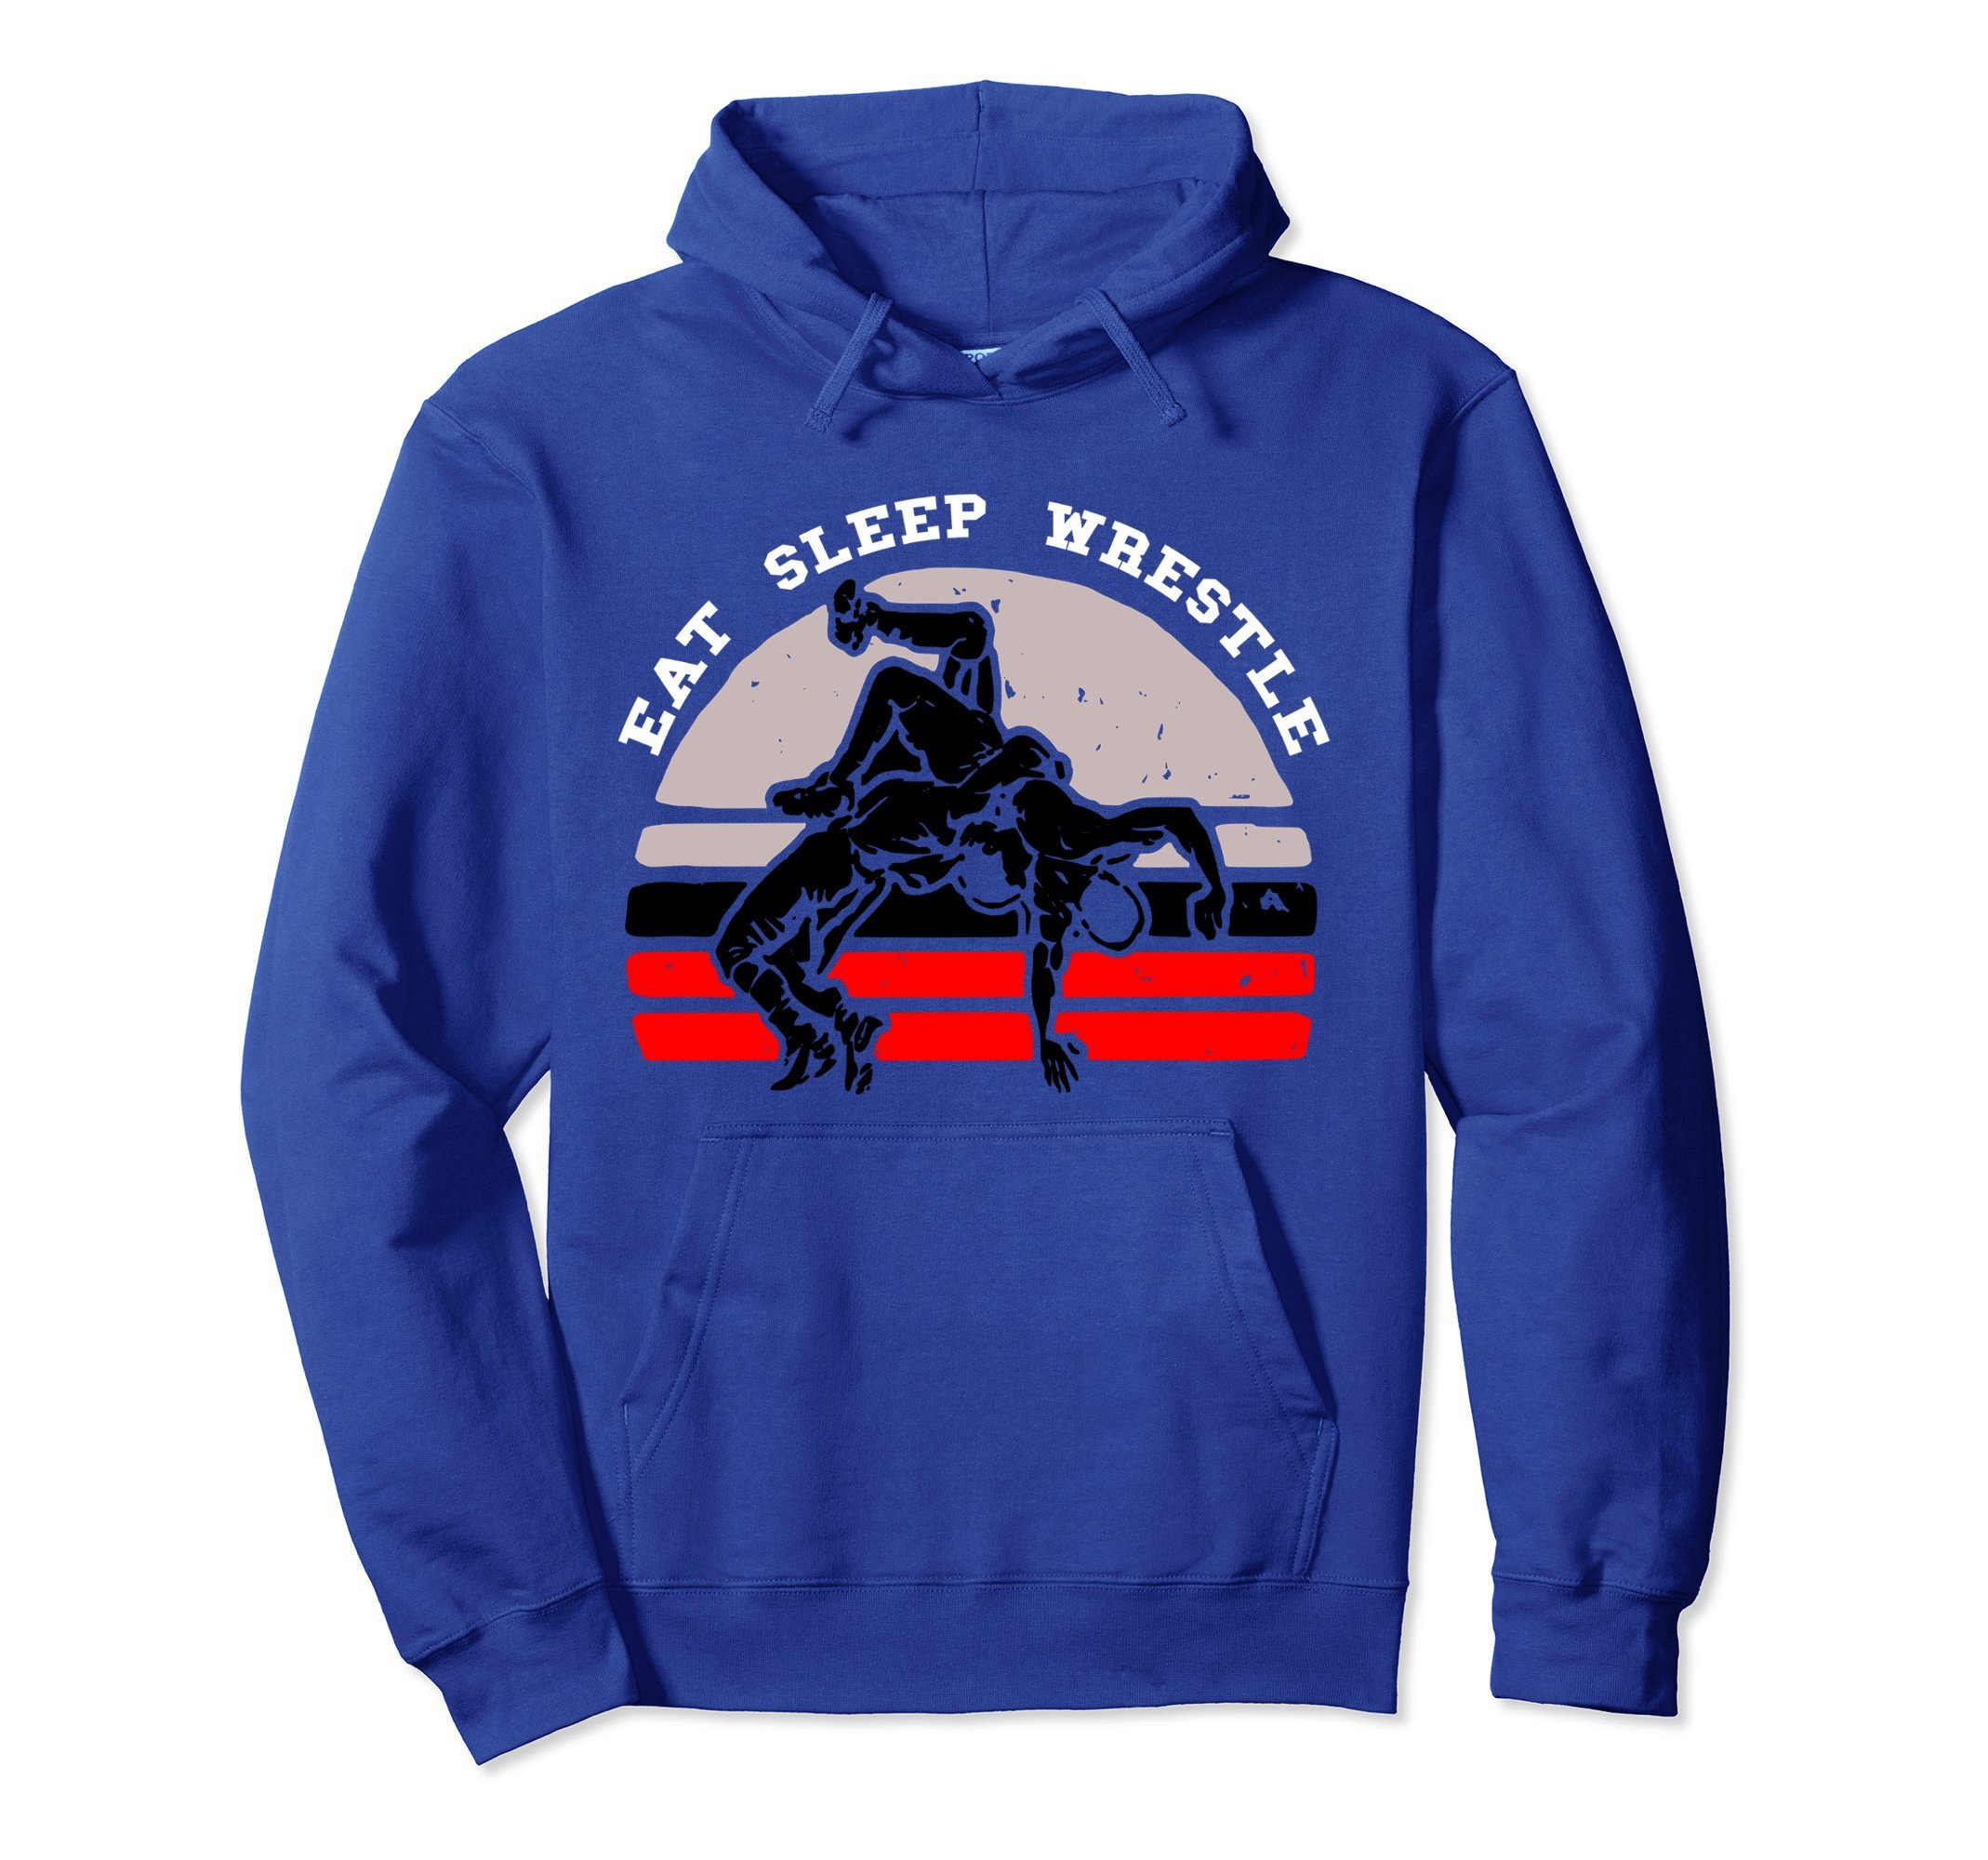 Unisex Eat Sleep Wrestle Hoodie Men, Women, Teens Gifts 2XL Royal Blue